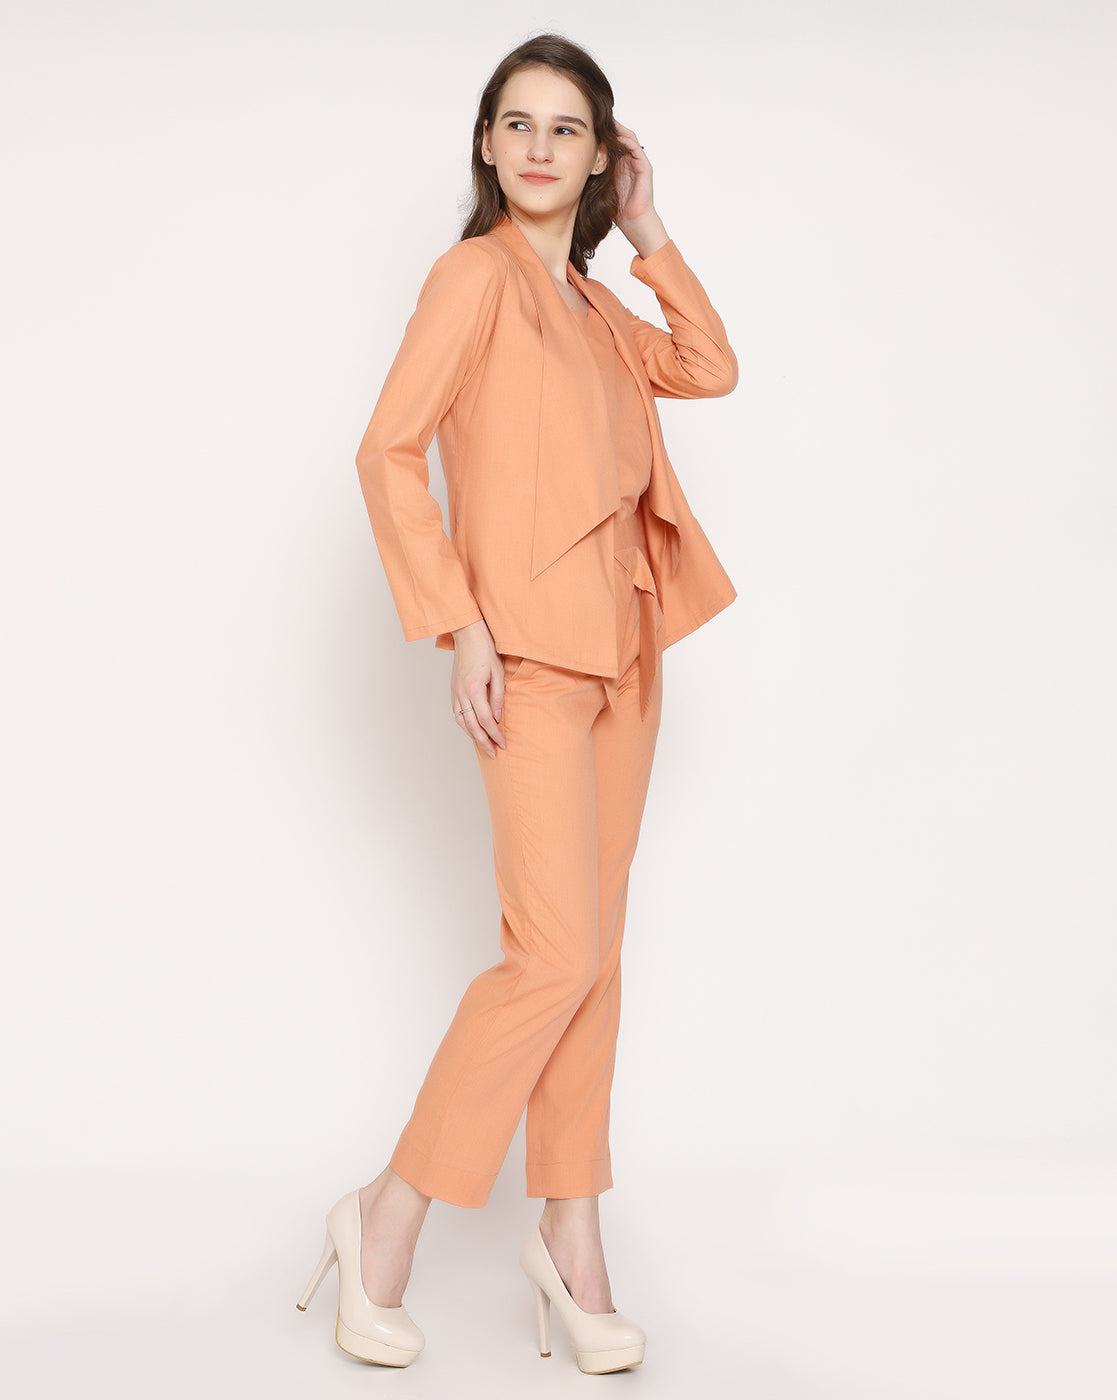 The Femme Fashion Trouser - Coral Orange